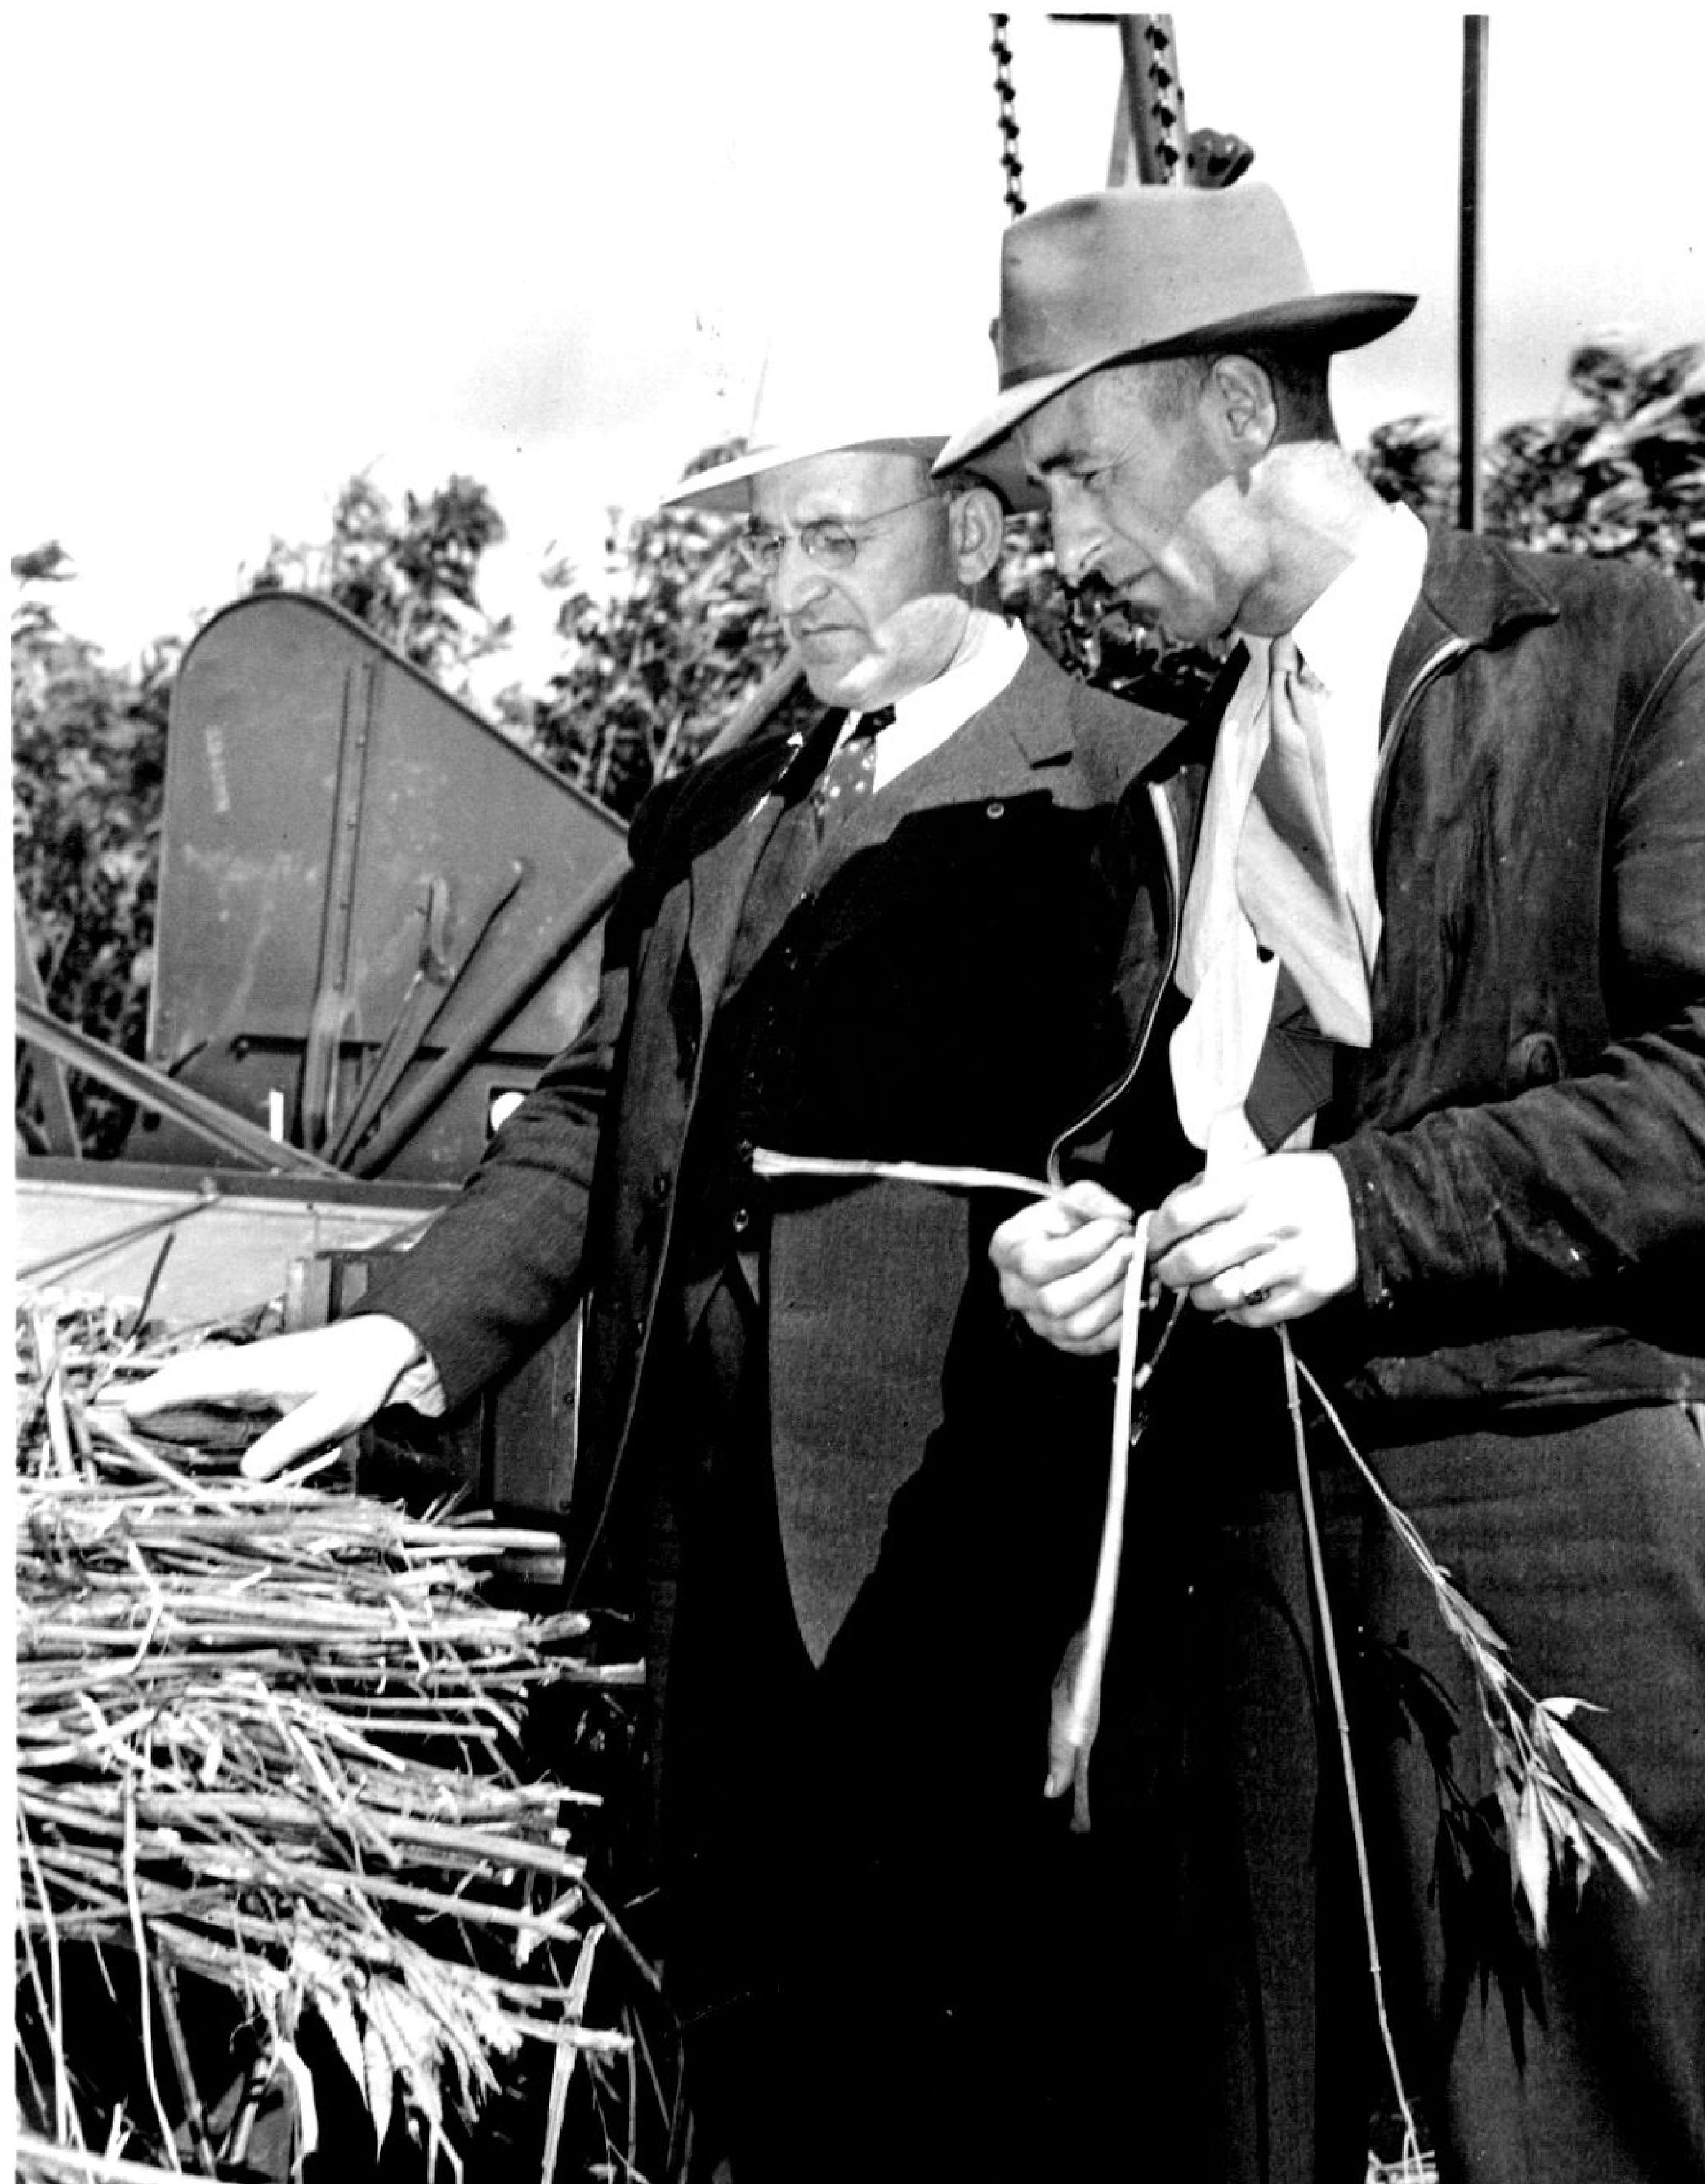 A state agriculture official, left, inspects the first hemp harvest in Mapleton, Minn in 1943 along with the manager of the Mapleton processing plant.